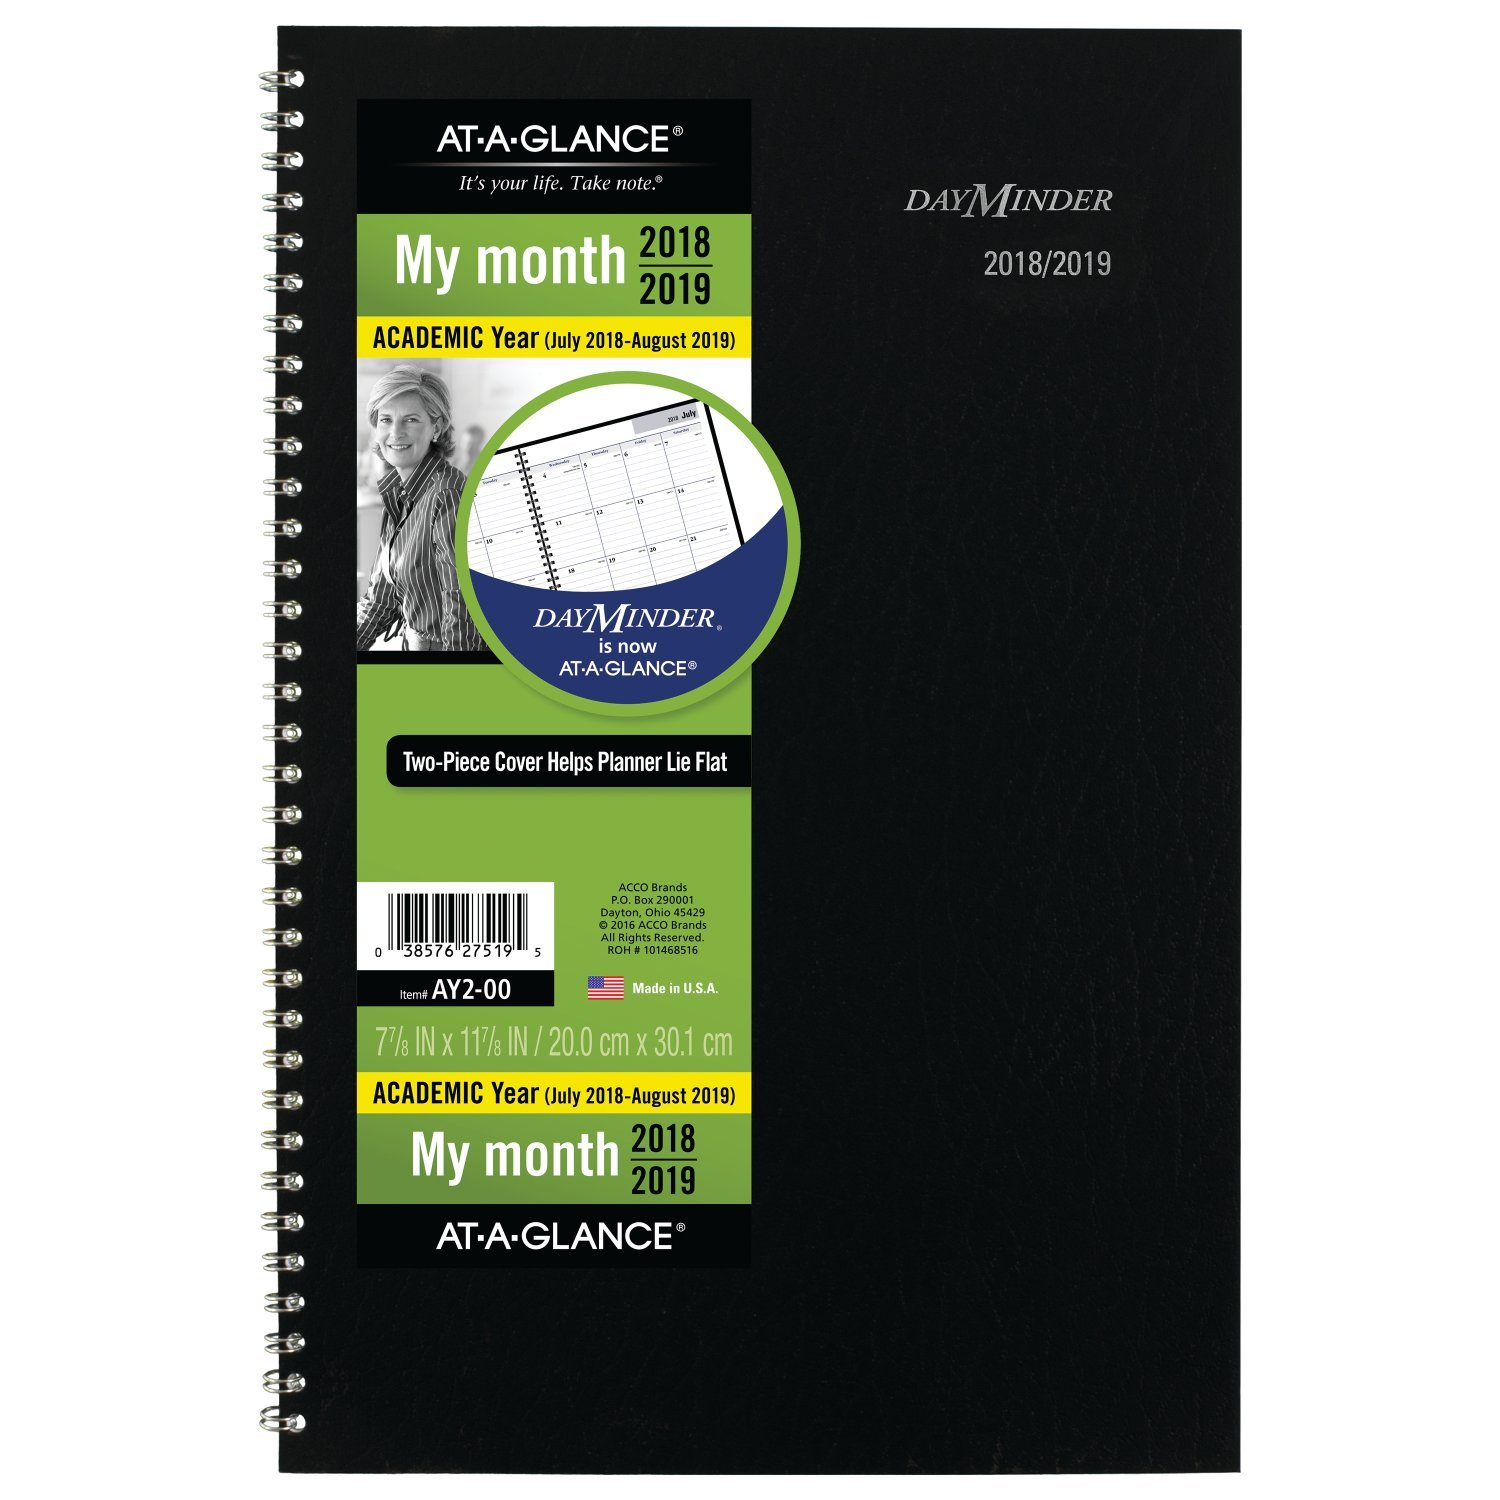 AT-A-GLANCE 2018-2019 Academic Year Monthly Planner, Medium, 7-7/8 x 11-7/8, DayMinder, Black (AY200)